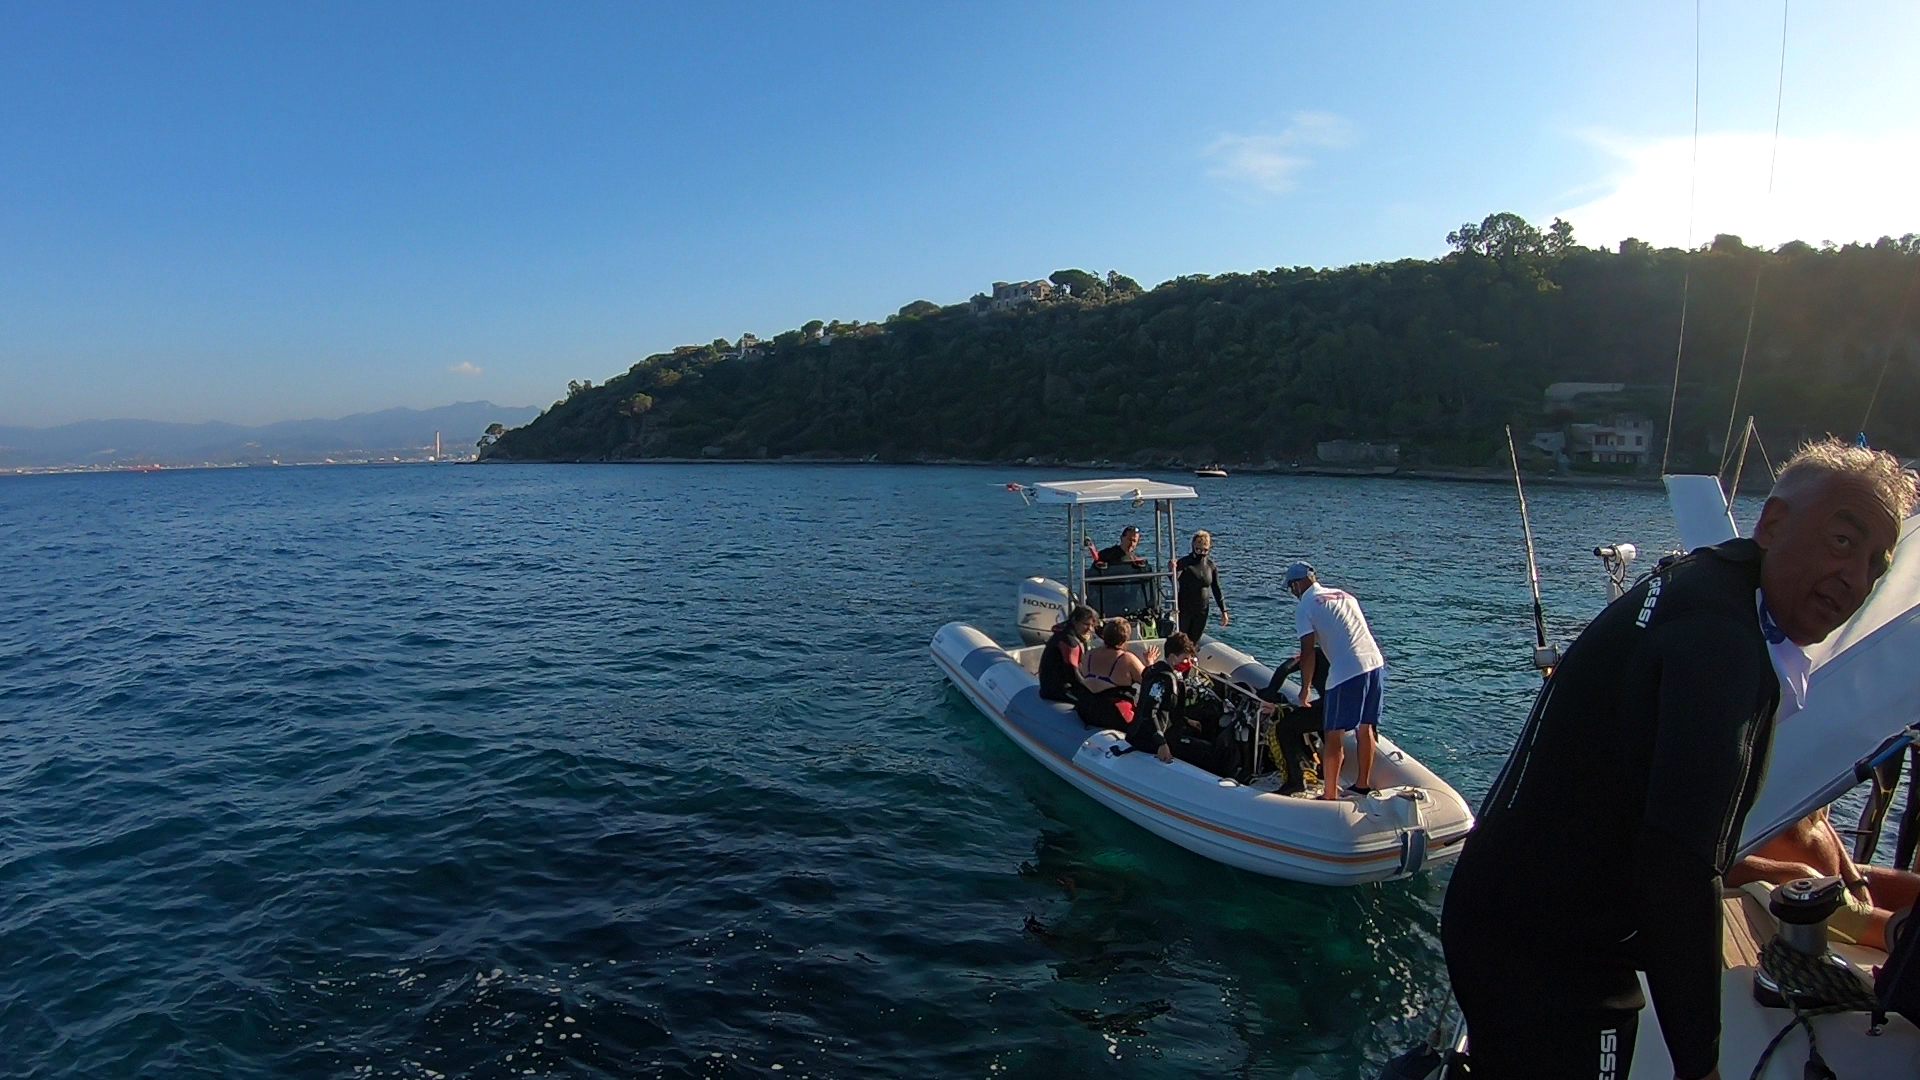 Capo Milazzo - Back from diving